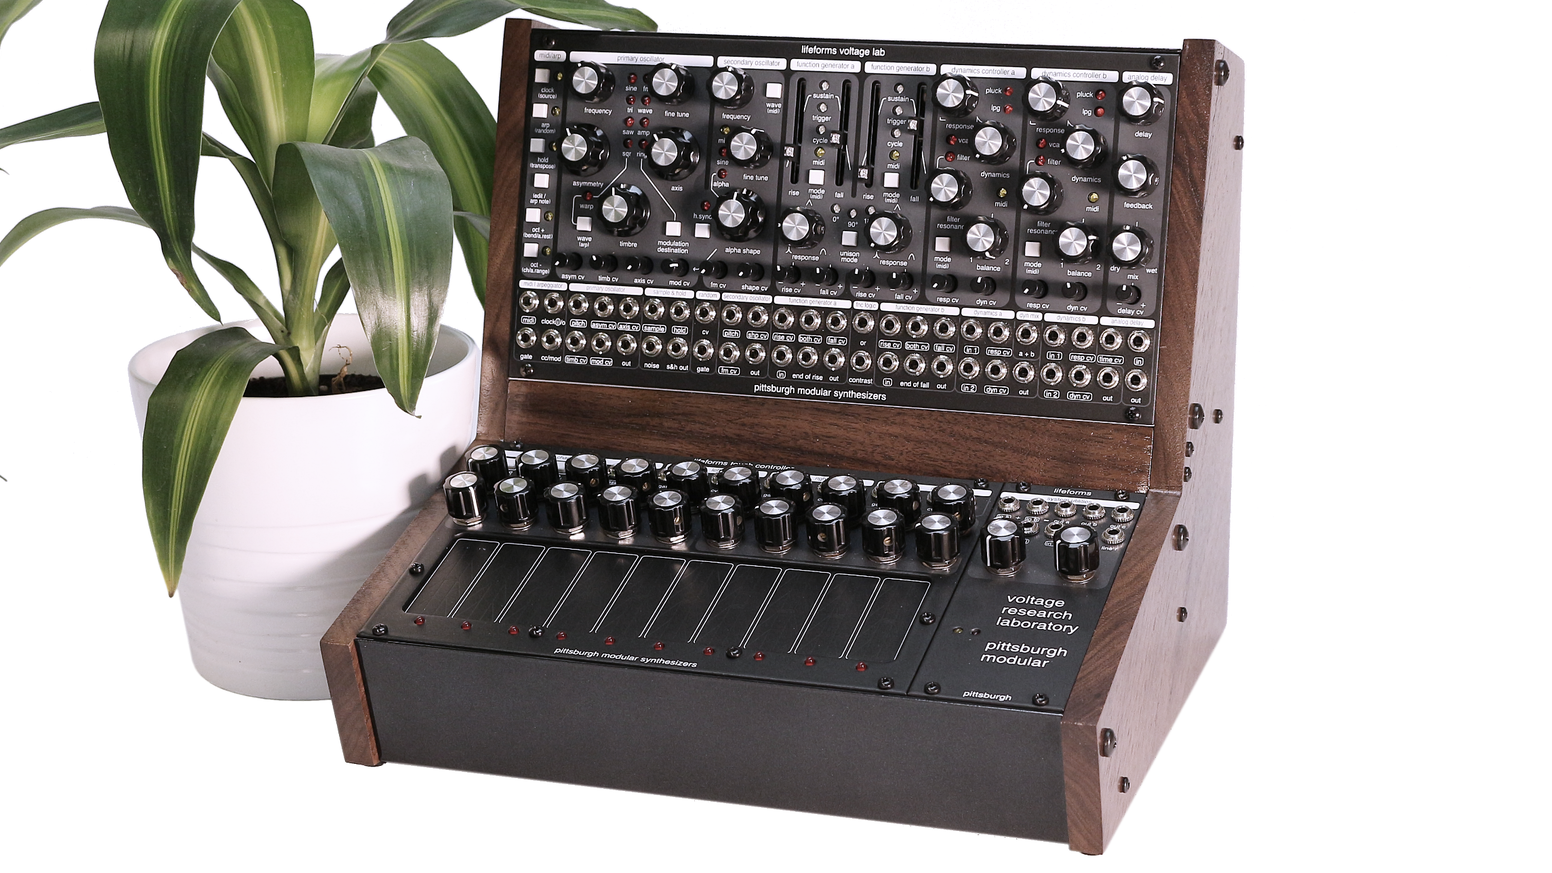 voltage research laboratory organic modular synthesizer by pittsburgh modular synthesizers. Black Bedroom Furniture Sets. Home Design Ideas